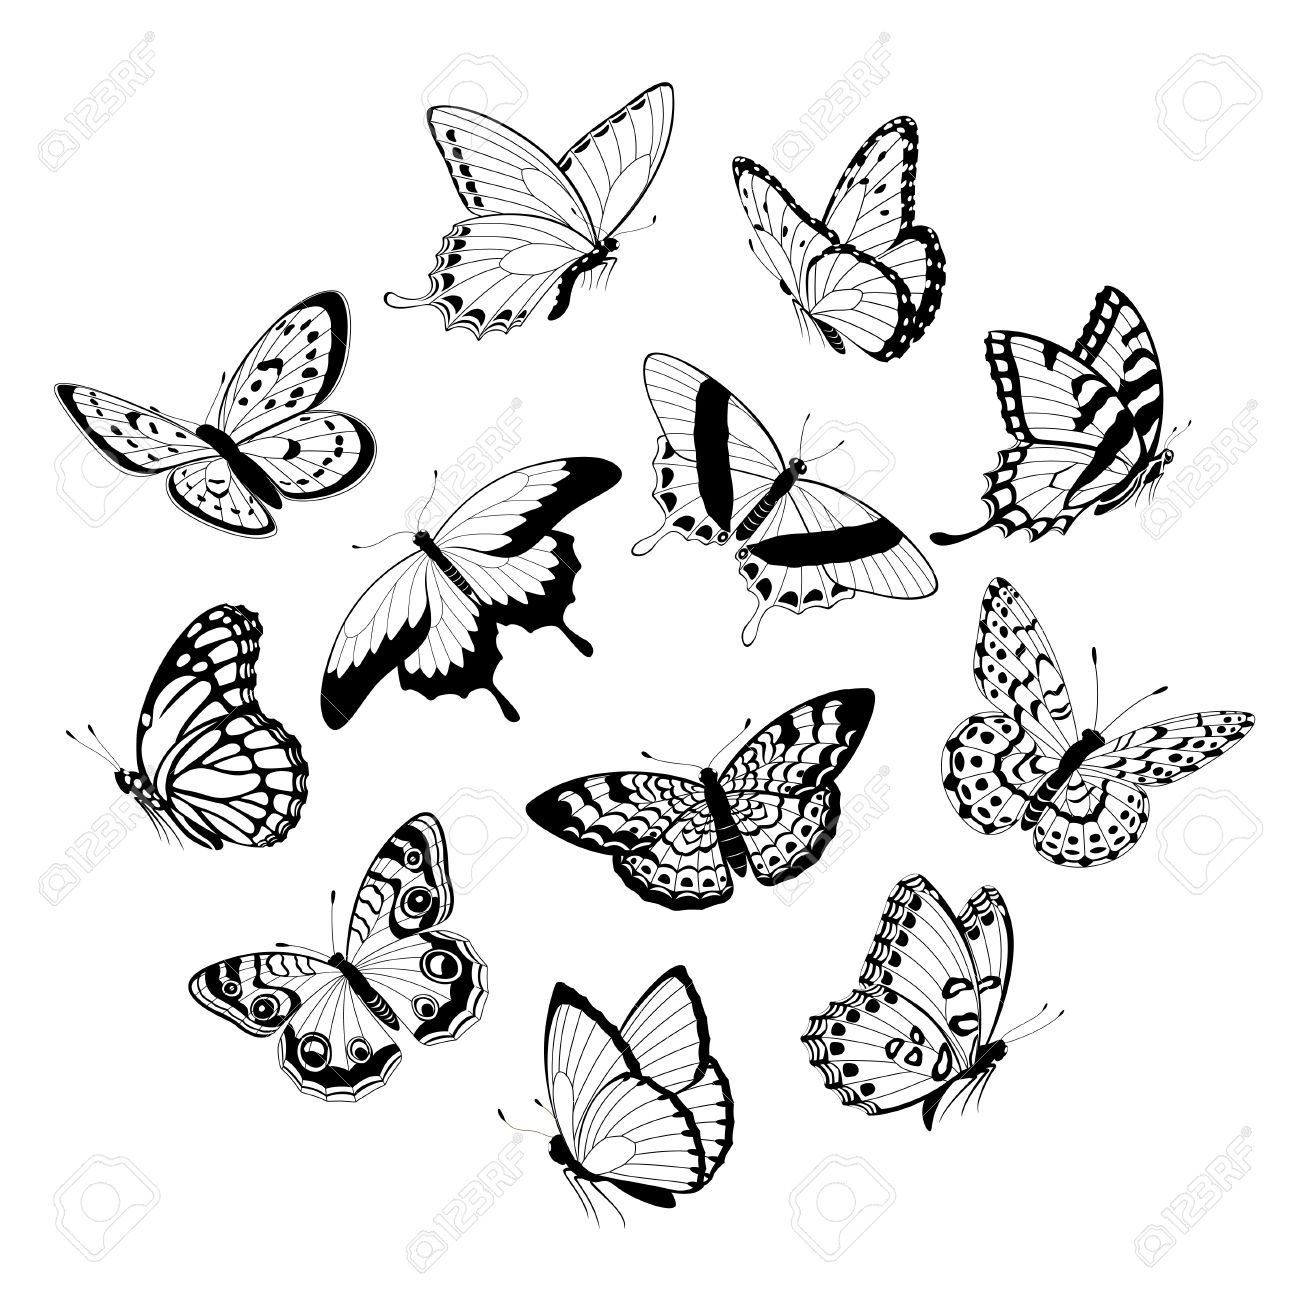 photo set of flying black and white butterflies isolated on white background